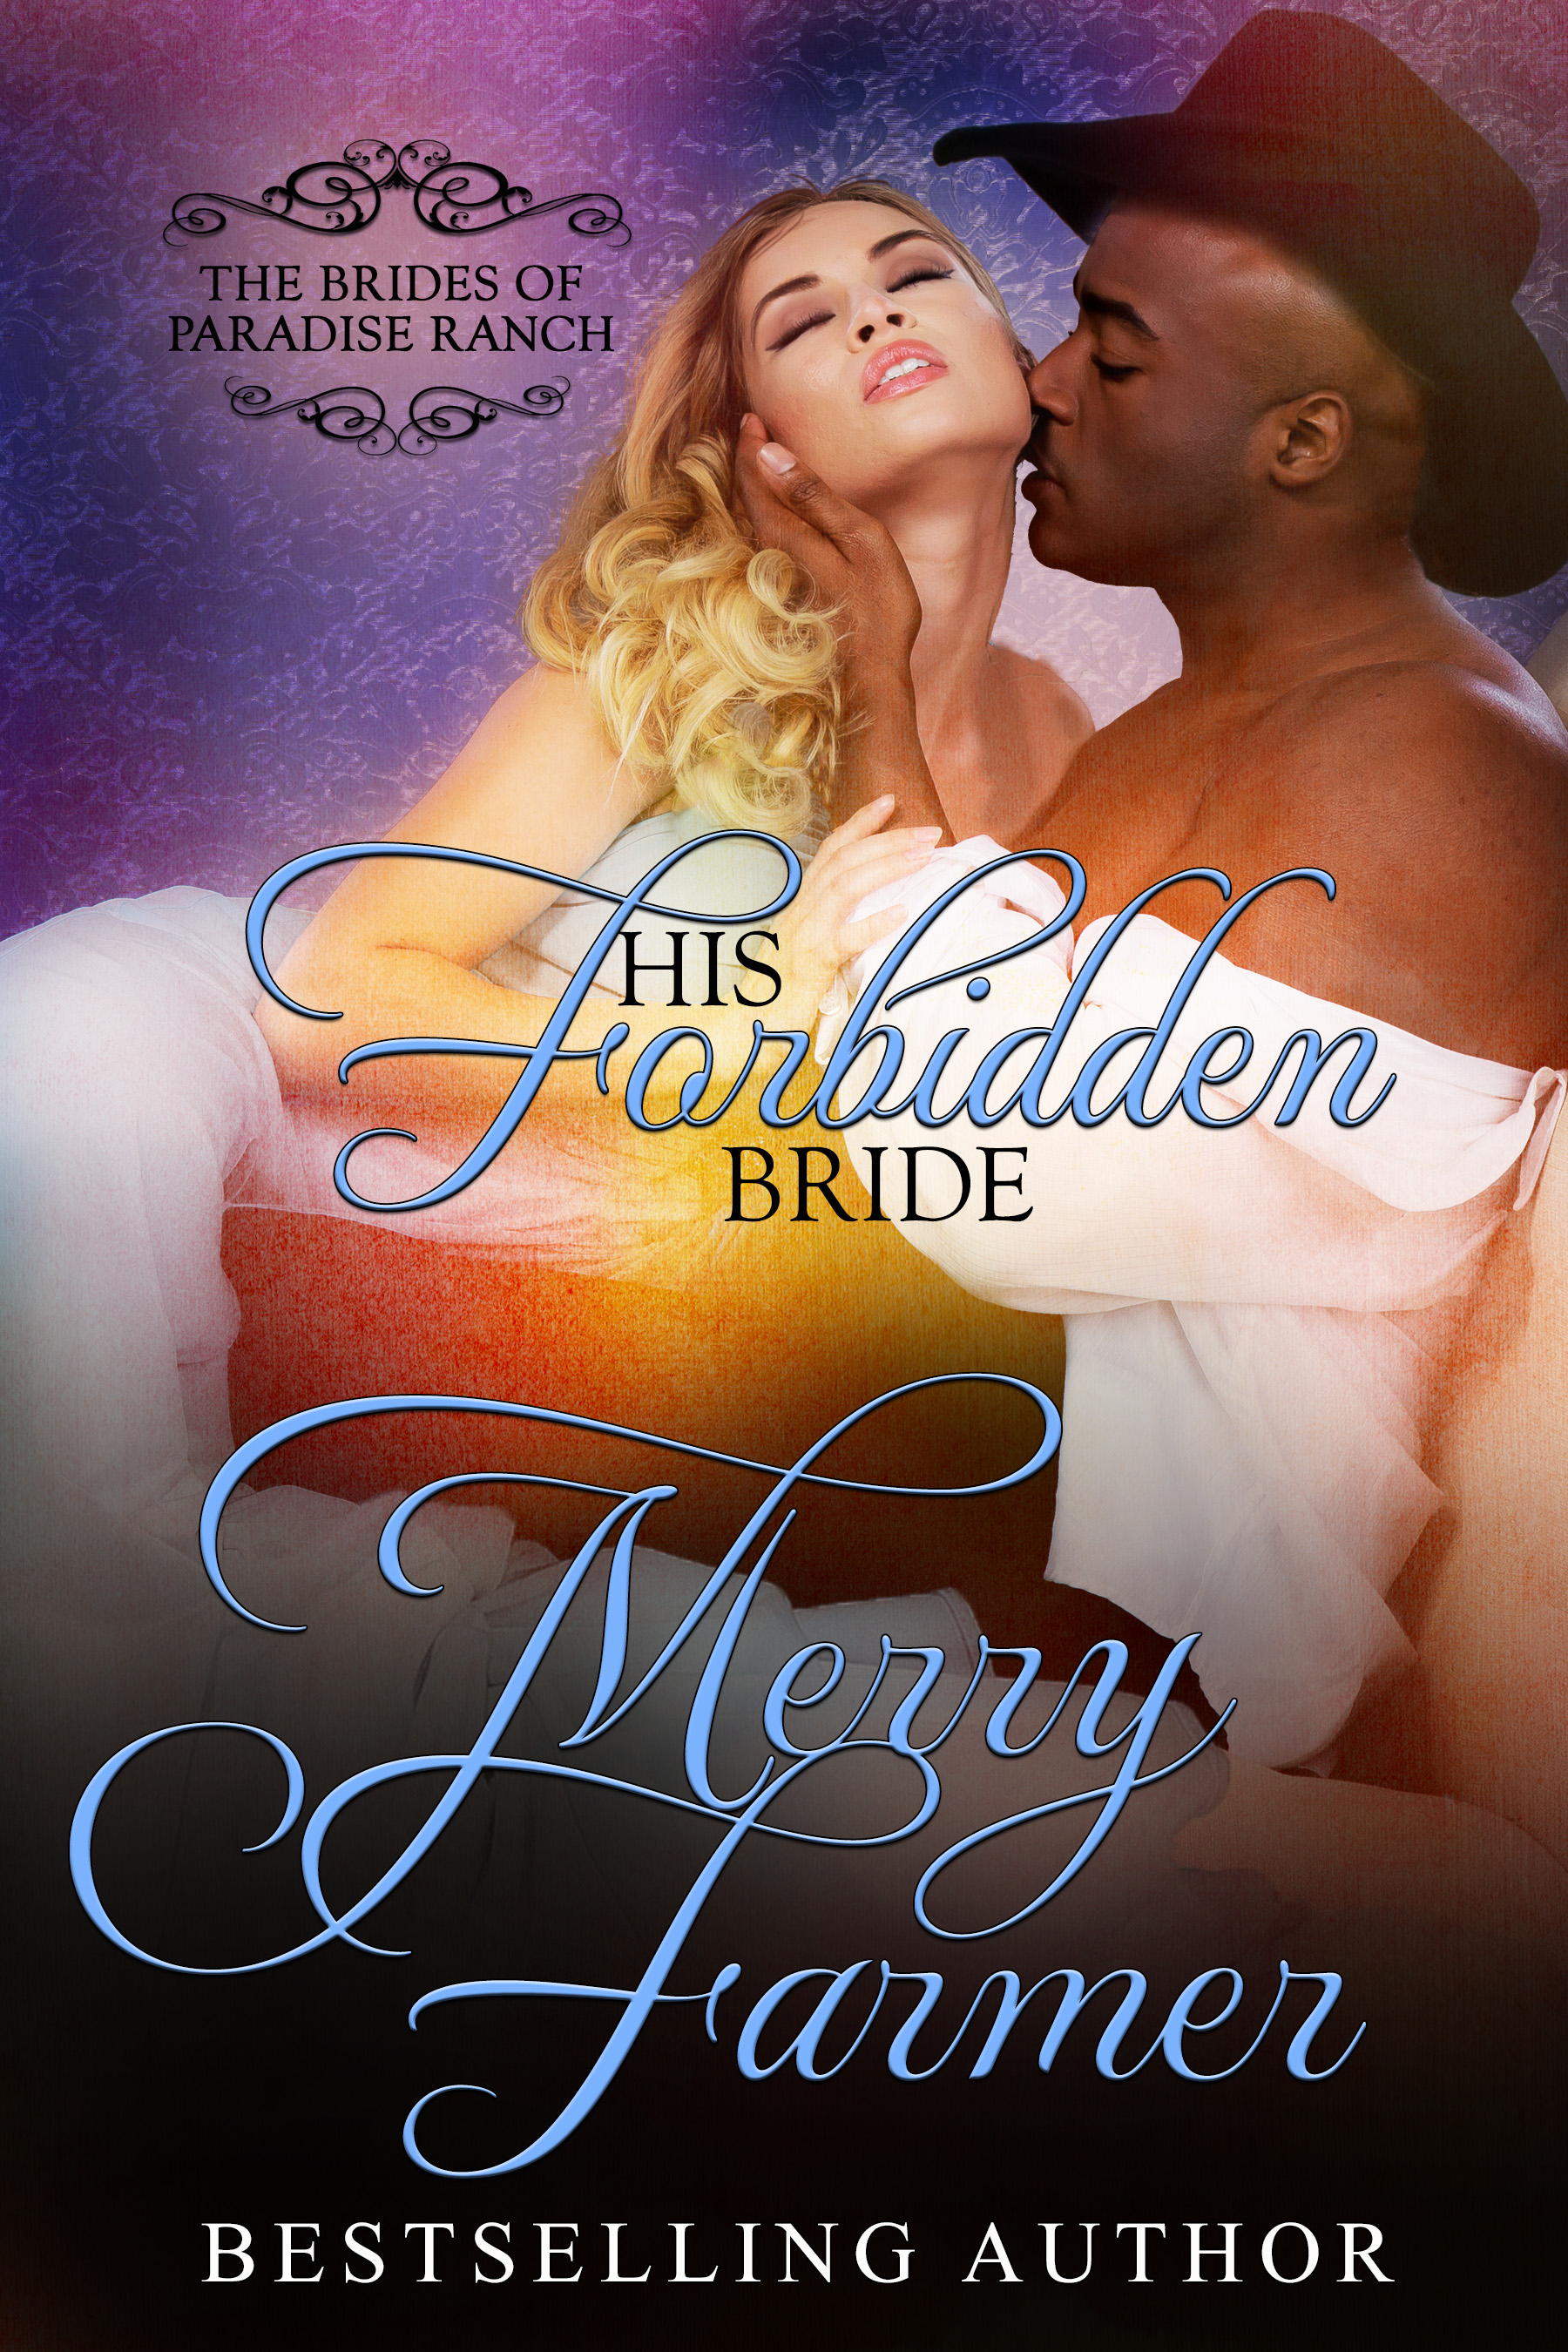 """His Forbidden Bride (Book 7) - Honoria Bonneville is dying. But she isn't about to let her diagnosis of consumption ruin what little time she has left. She's wasted her whole life catering to her obnoxious sisters and uncaring father, but no more. In a move to live the last days of her life on her own terms, she approaches the man she's loved from afar for years, local banker Solomon Templesmith, and asks him to marry her.But Honoria underestimates the scandal of a white woman marrying a black man…Solomon has admired Honoria from afar for ages, but has always held back from courting her, knowing the trouble it would cause. When Honoria comes to him, asking for his protection and friendship, he can't resist giving his heart to her…even though their union threatens to ruin the bank he's worked so hard to build up and possibly endanger his life.Their heartbreaking, trouble-making, perfect match seems doomed to be magnificent but short…until a shocking revelation changes everything…PLEASE BE ADVISED: Steam Level = HOTIf you would like to read this story without any """"scenes,"""" check out Honoria: The Forbidden Bride."""